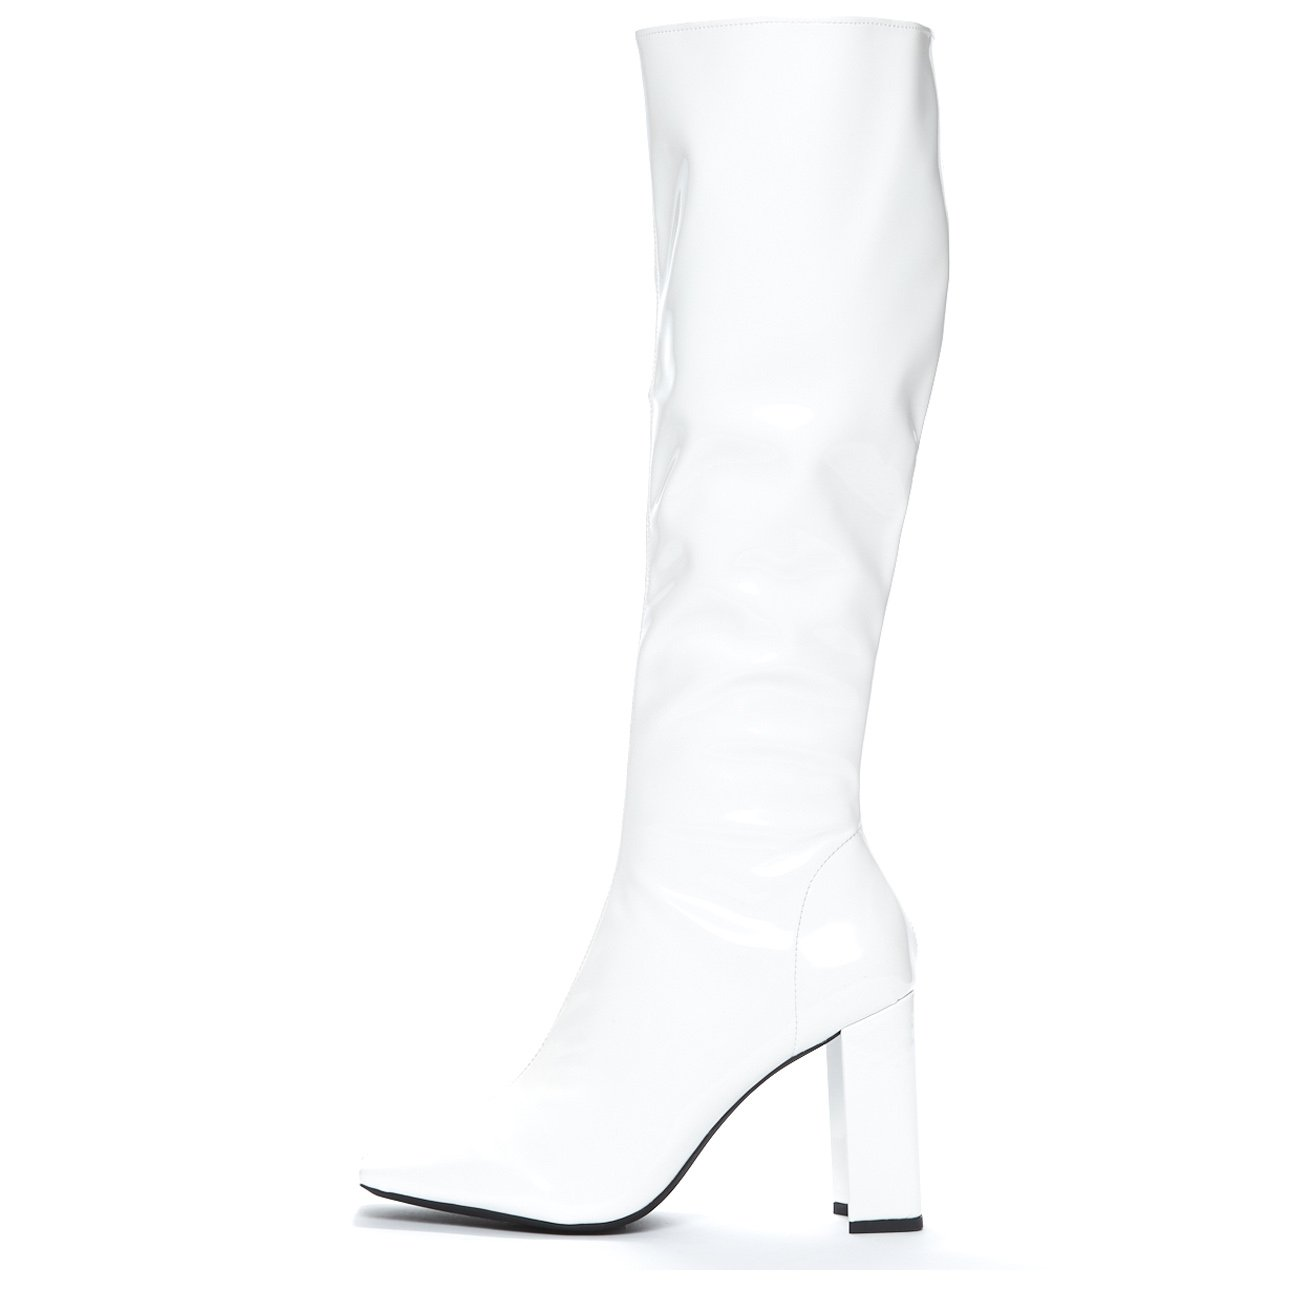 Jeffrey Campbell 'Nemesis MD', white knee hi boot, 8